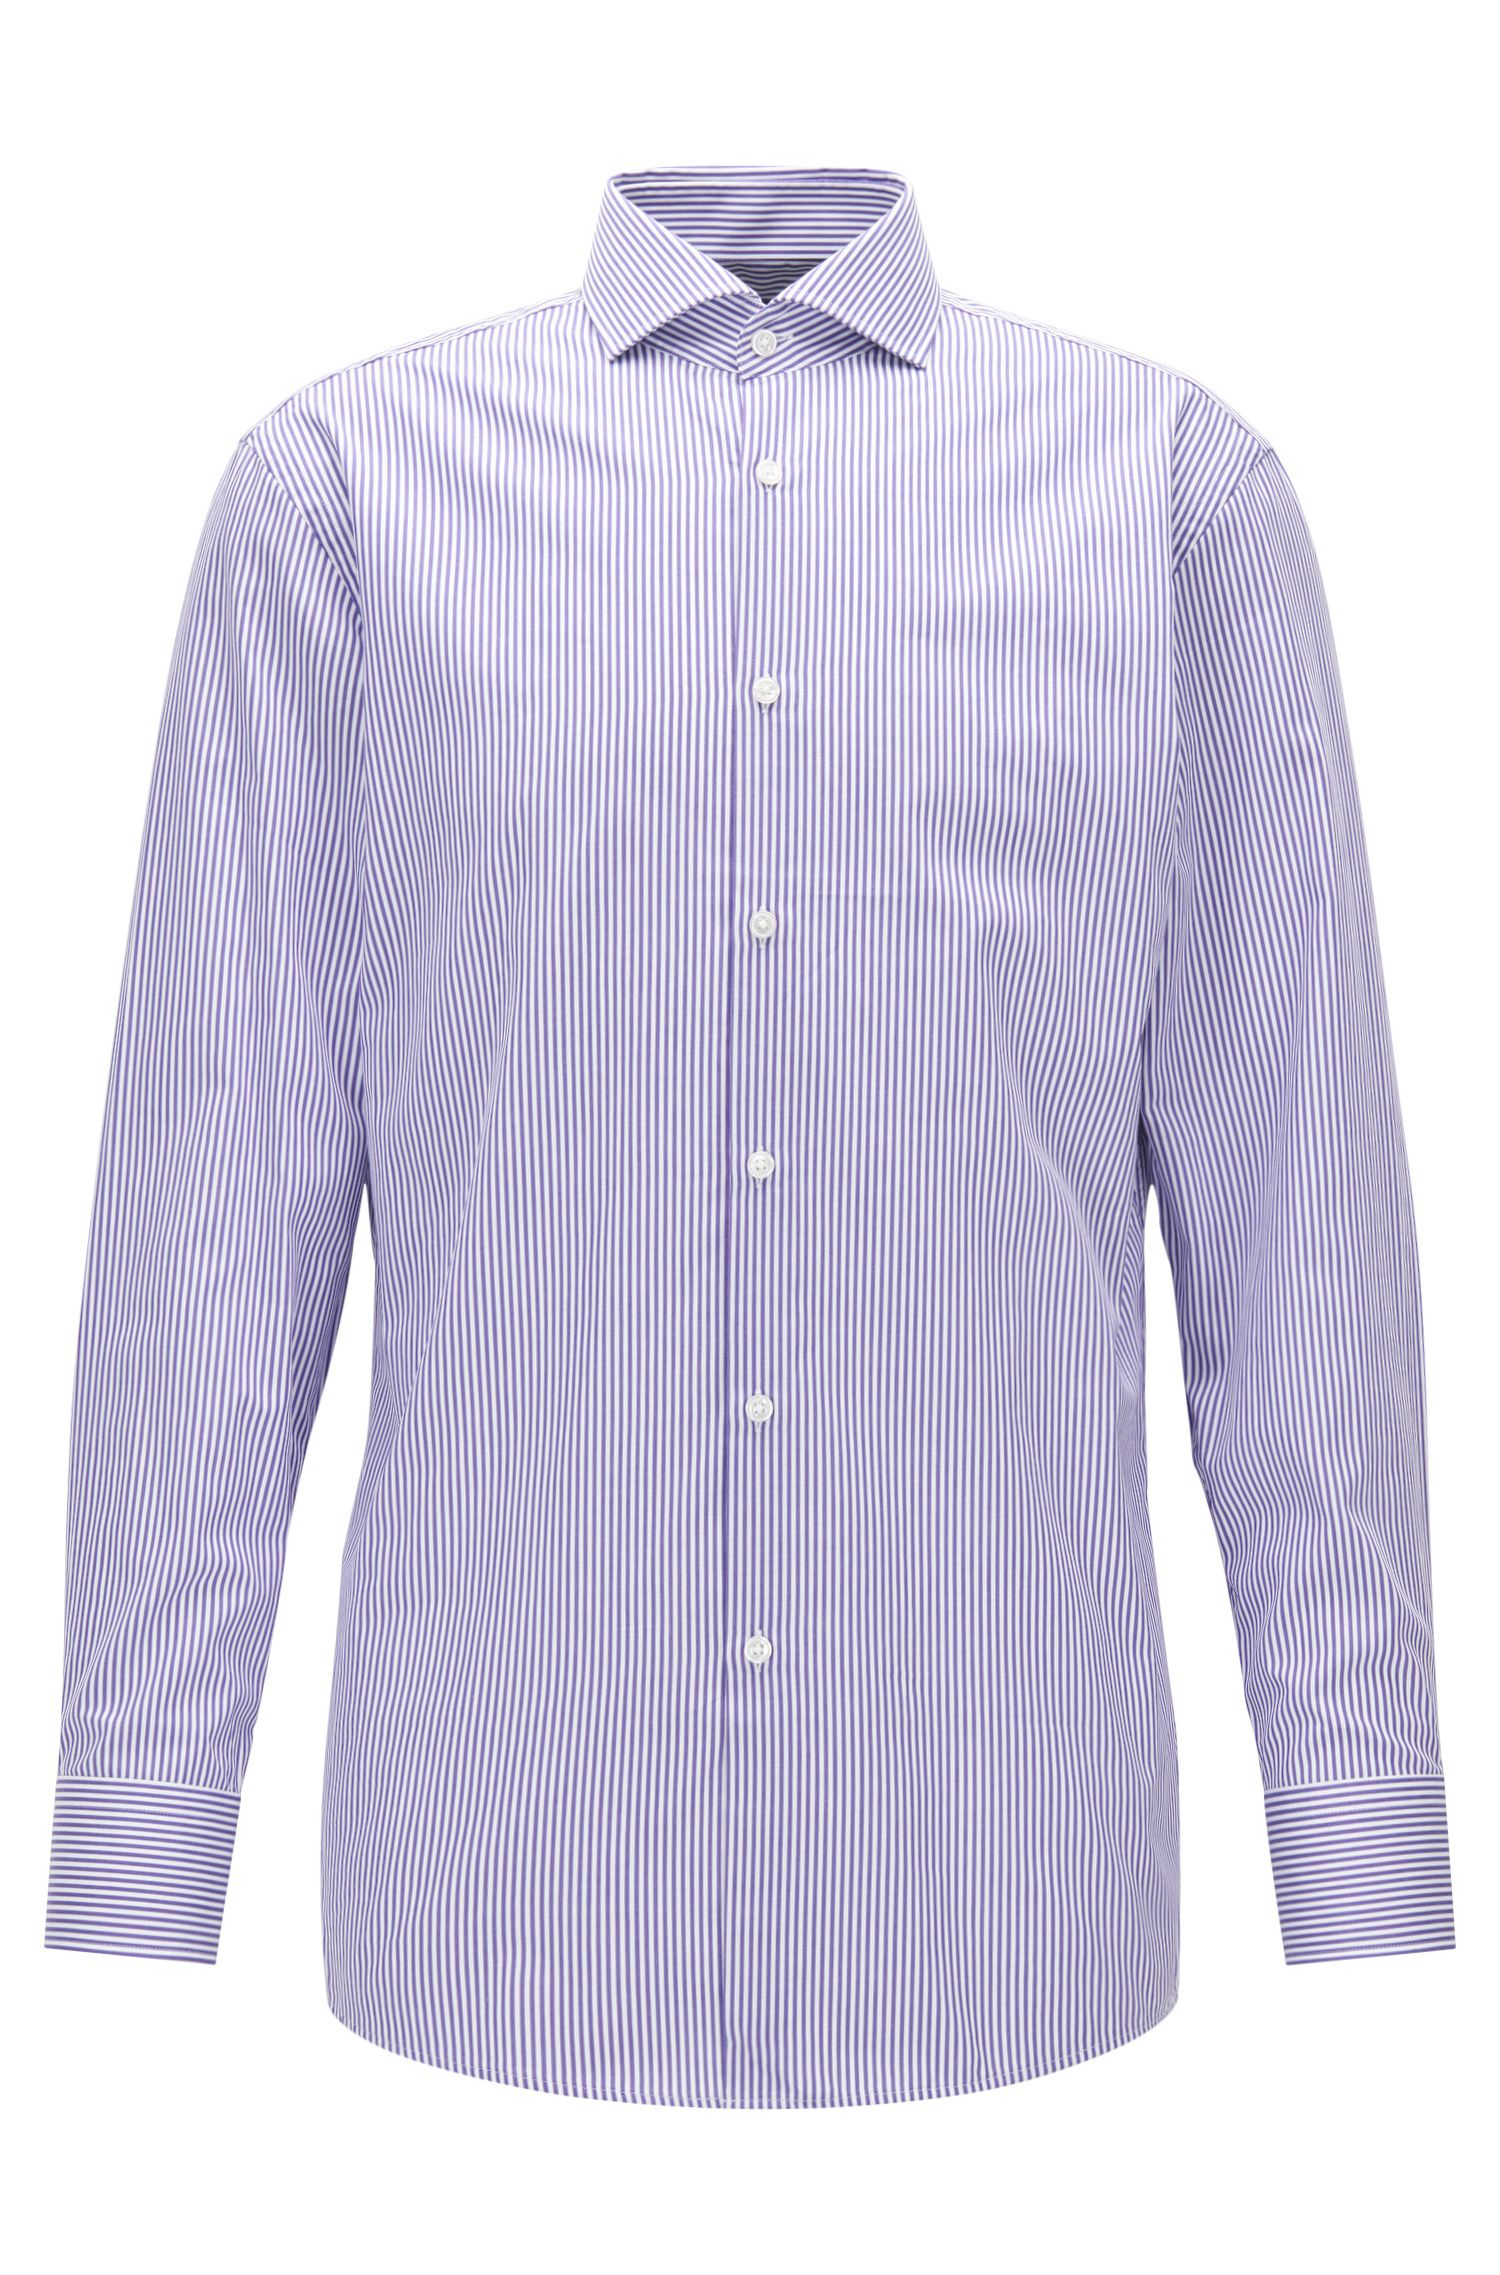 Striped Cotton Dress Shirt, Sharp Fit | Mark US